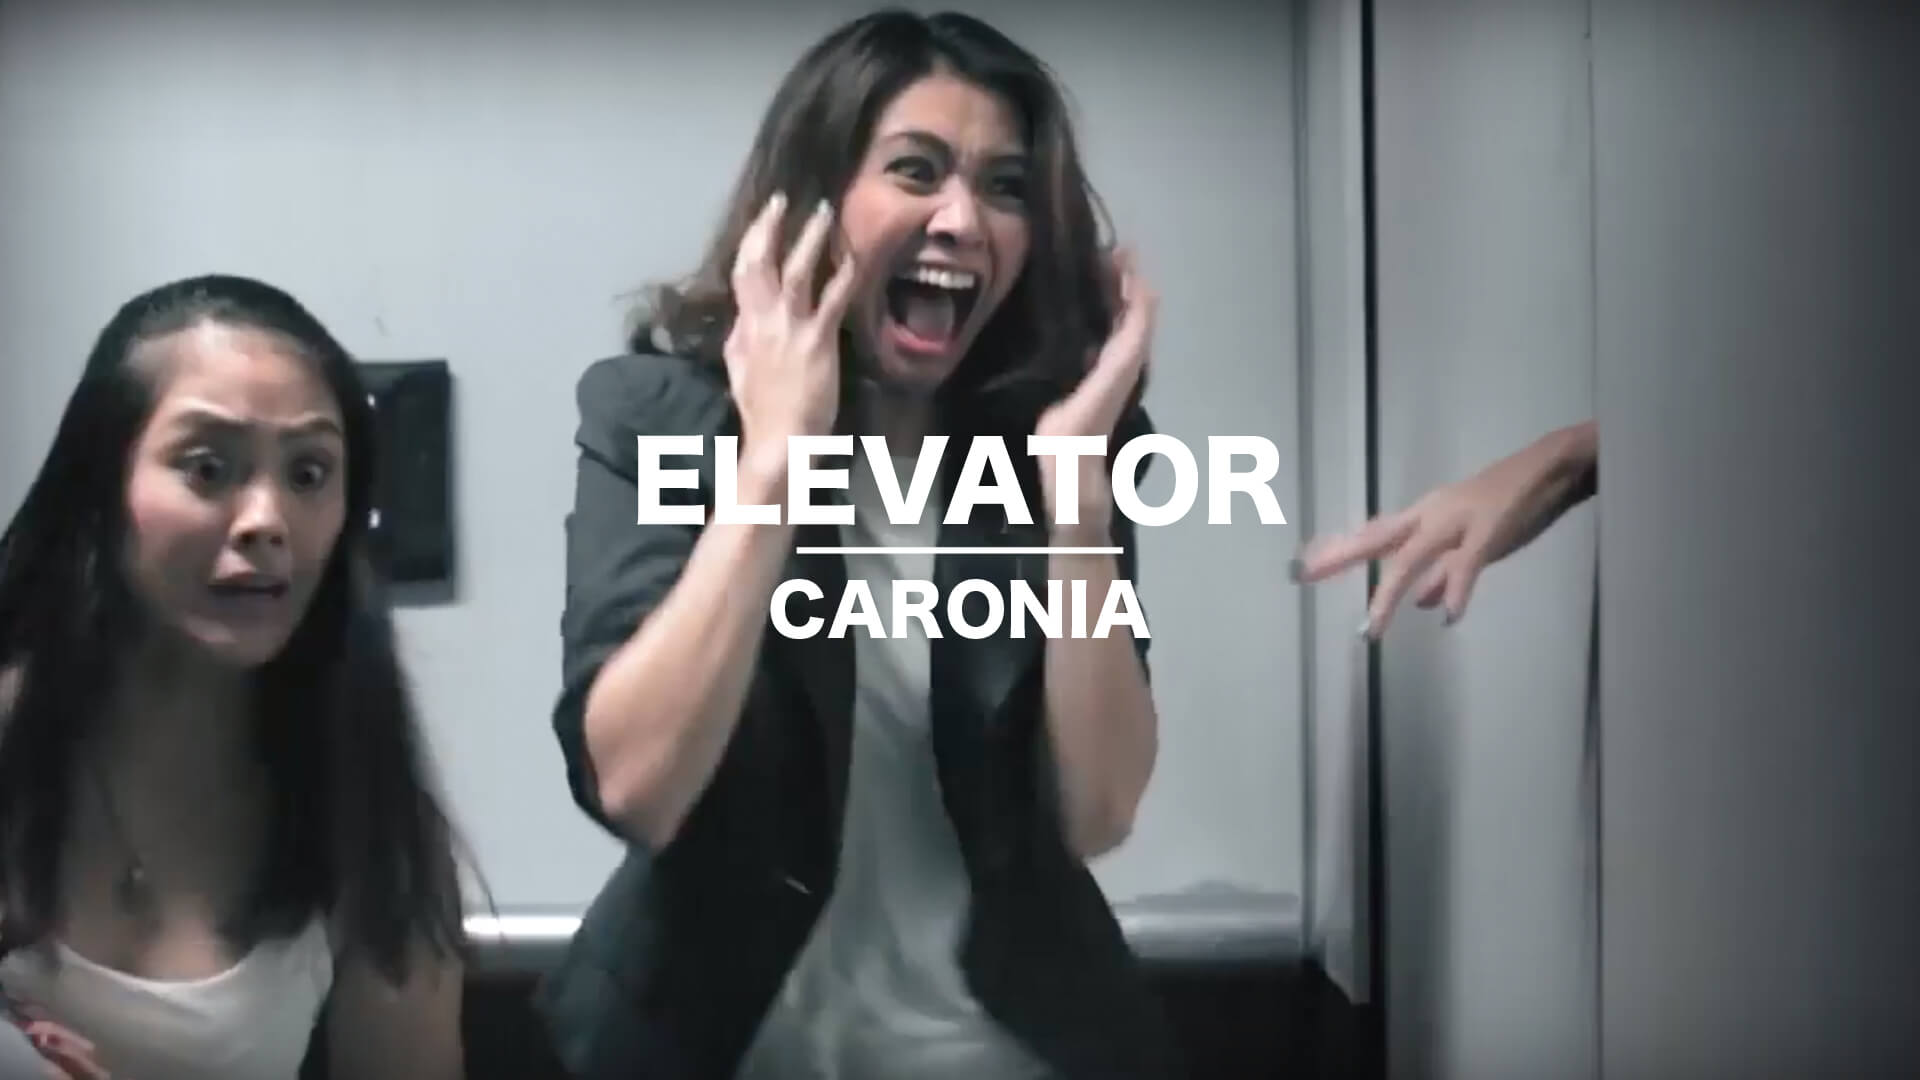 Project Elevator Caronia Online